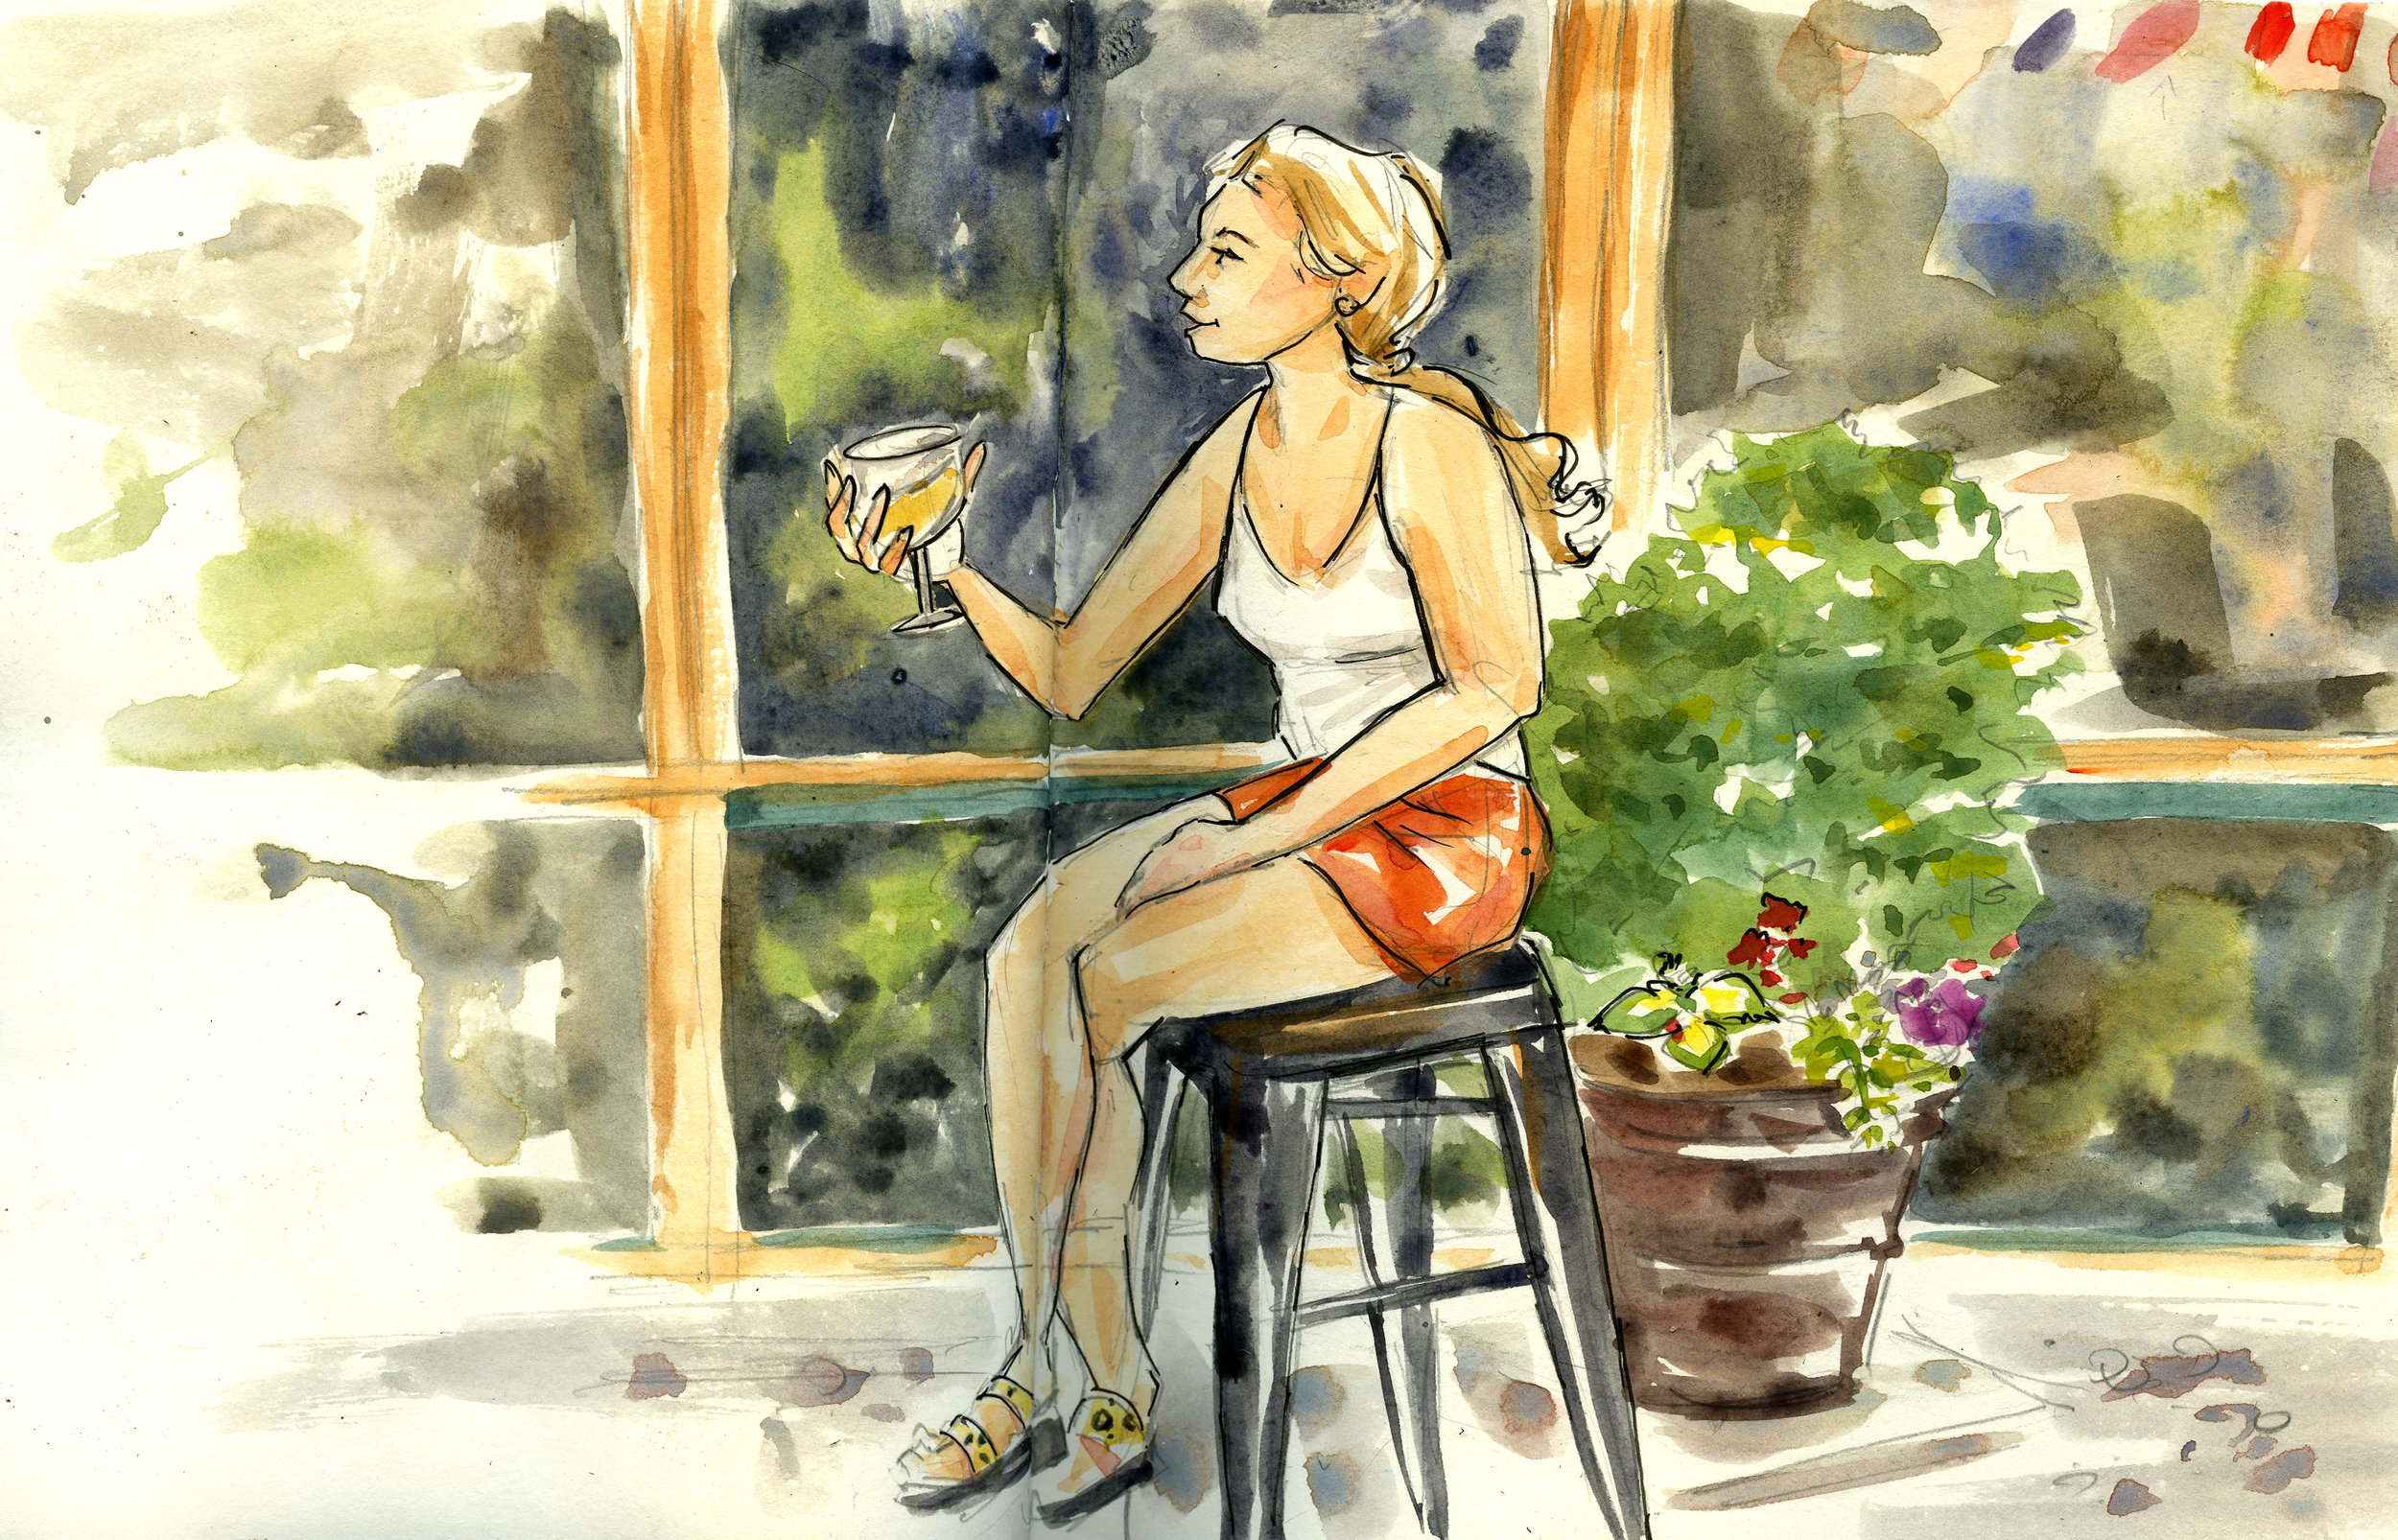 Patio Girl dana cohen artist washington dc.jpg